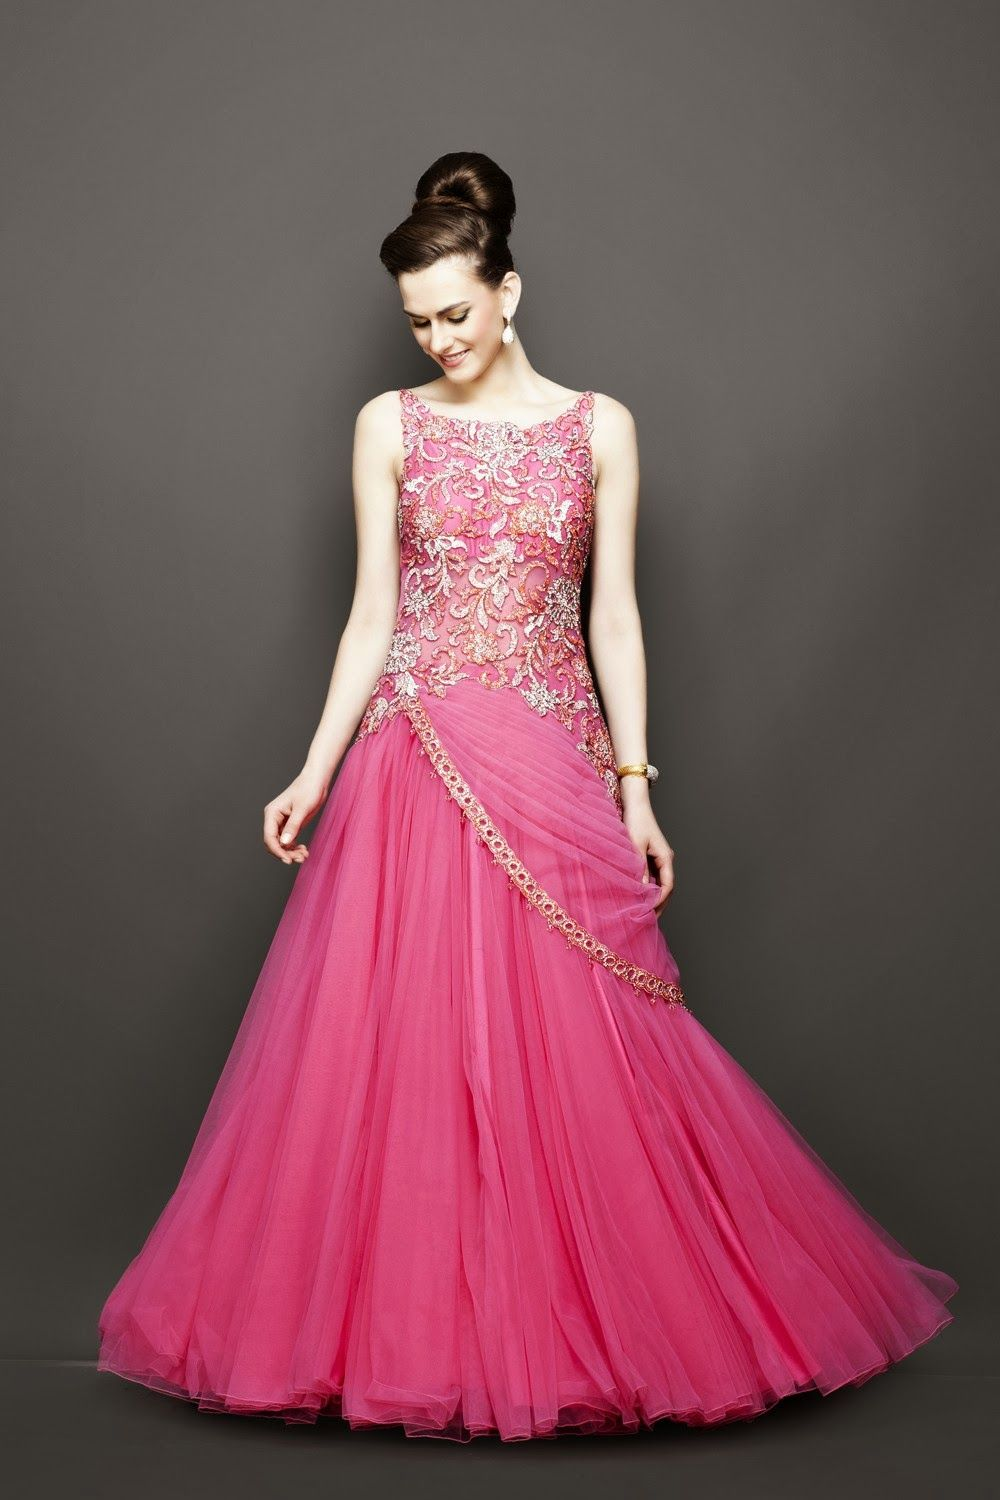 evening dress for wedding in pink color | Dresses | Pinterest ...